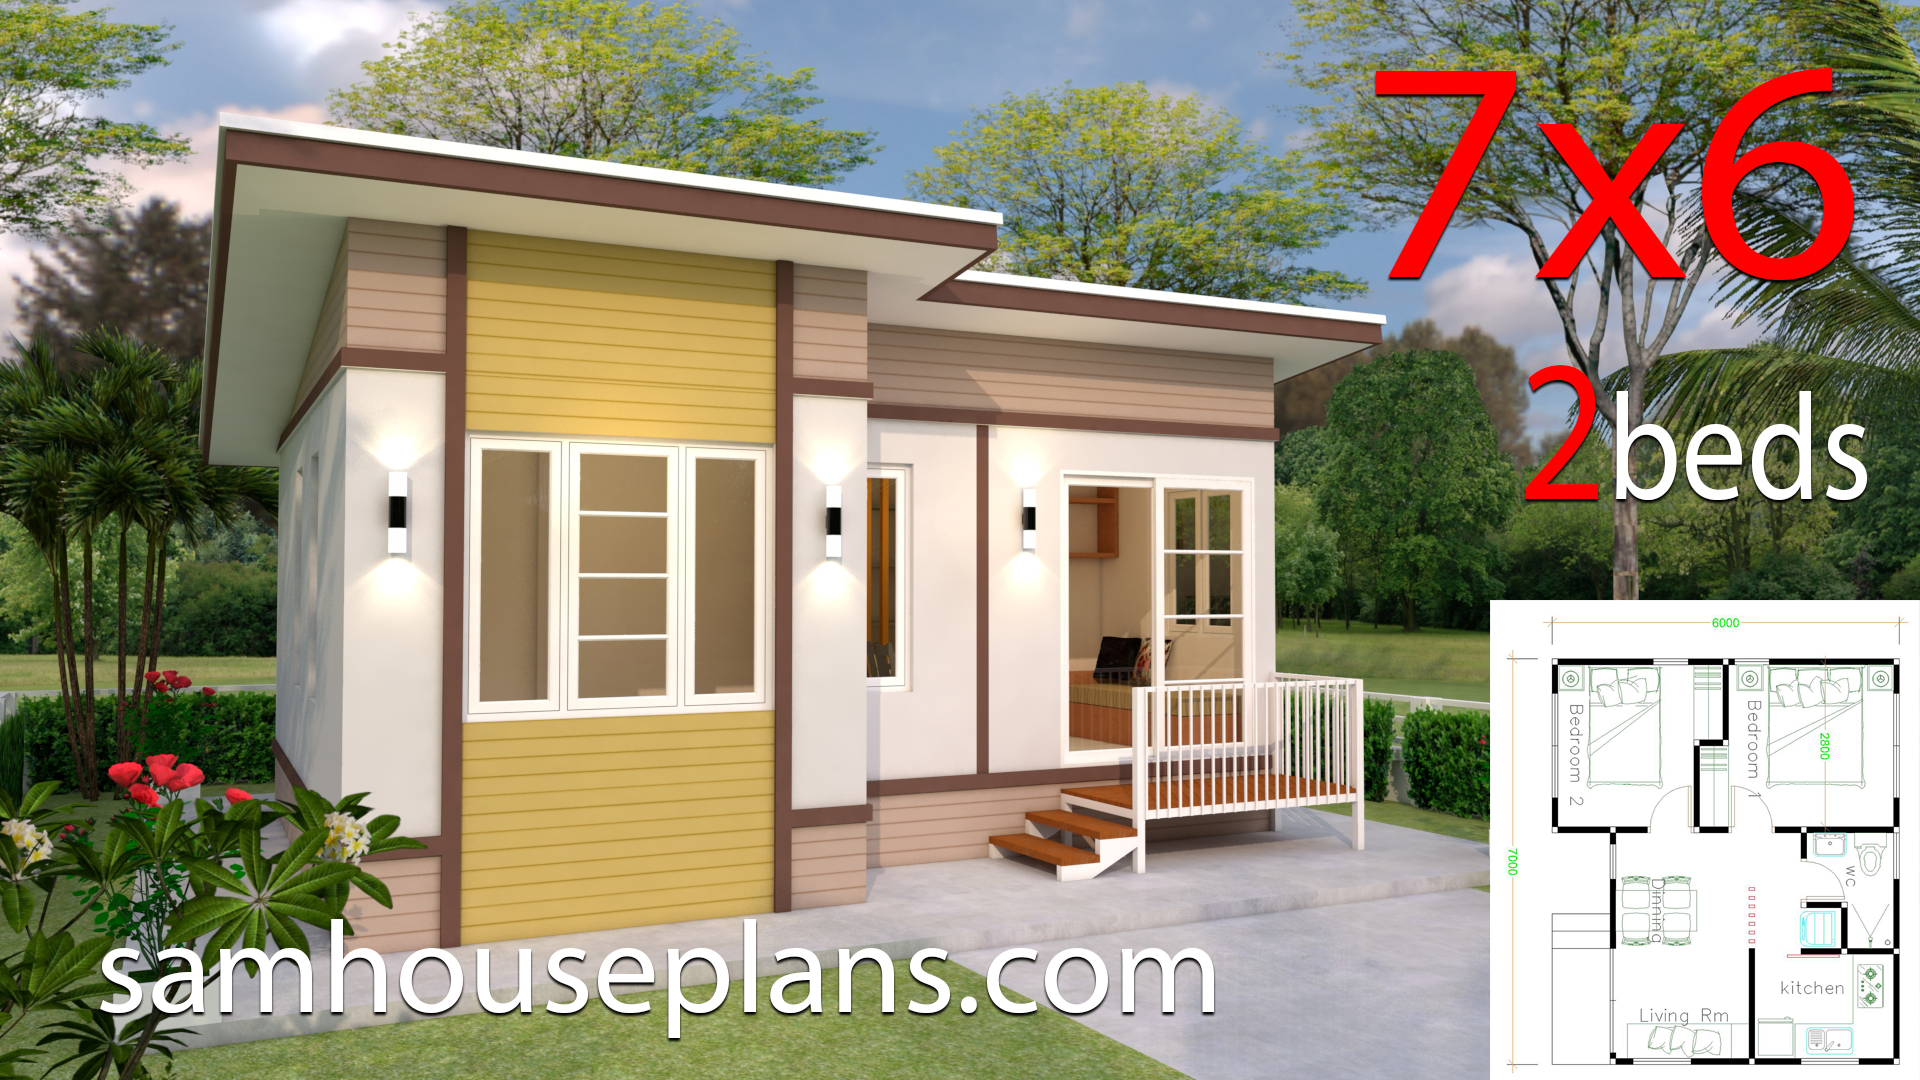 Small House Design 7x6 with 2 Bedrooms - Sam House Plans